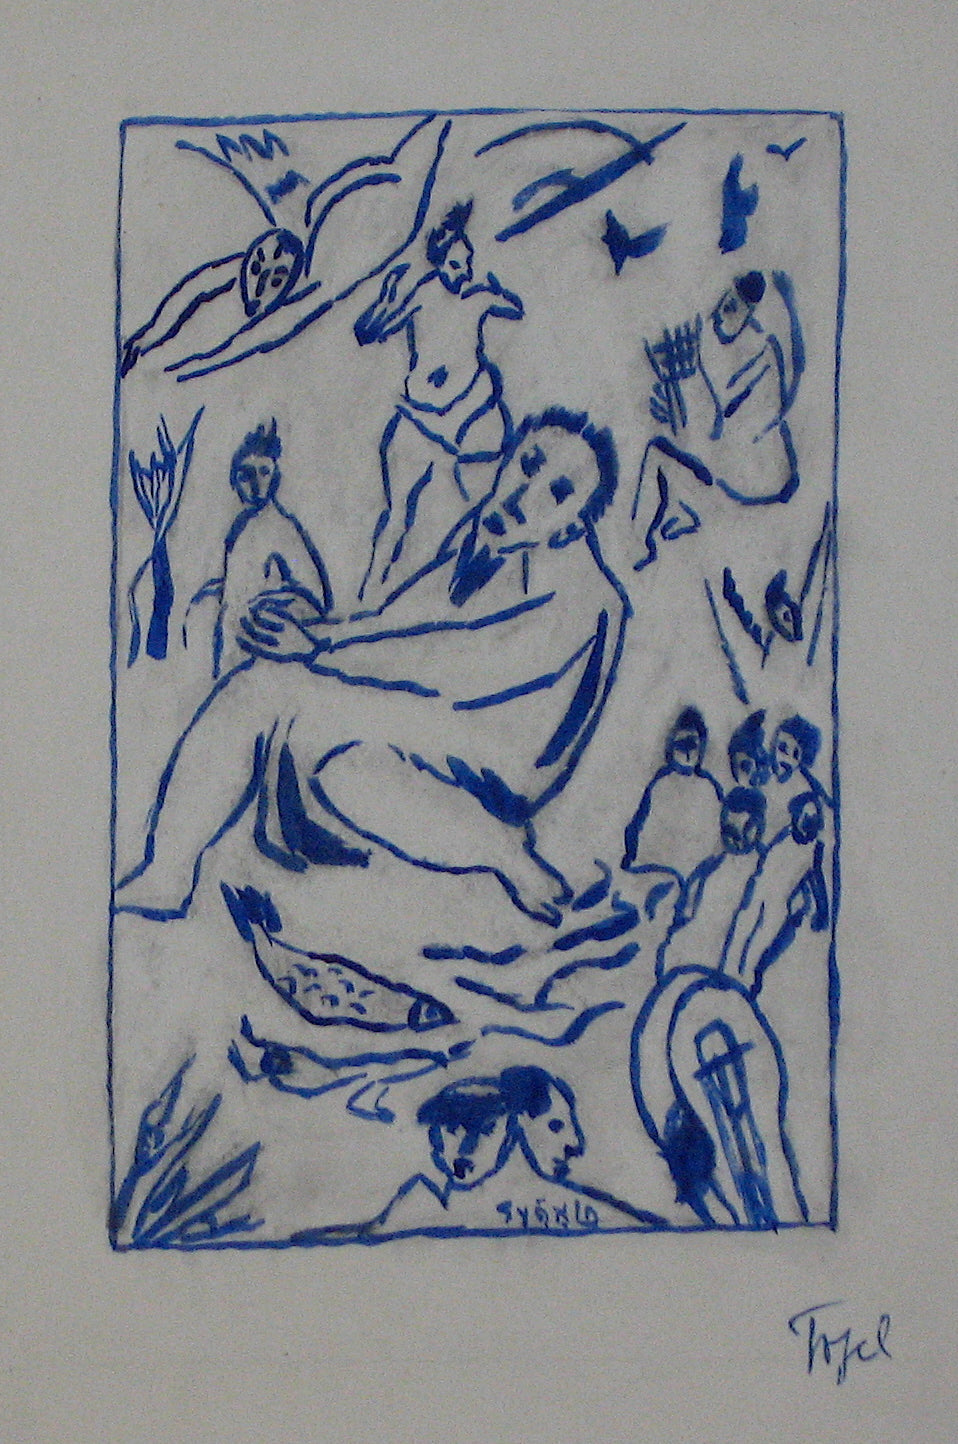 Nude Blue Figurative Scene <br>Early 20th Century ink <br><br>#11322